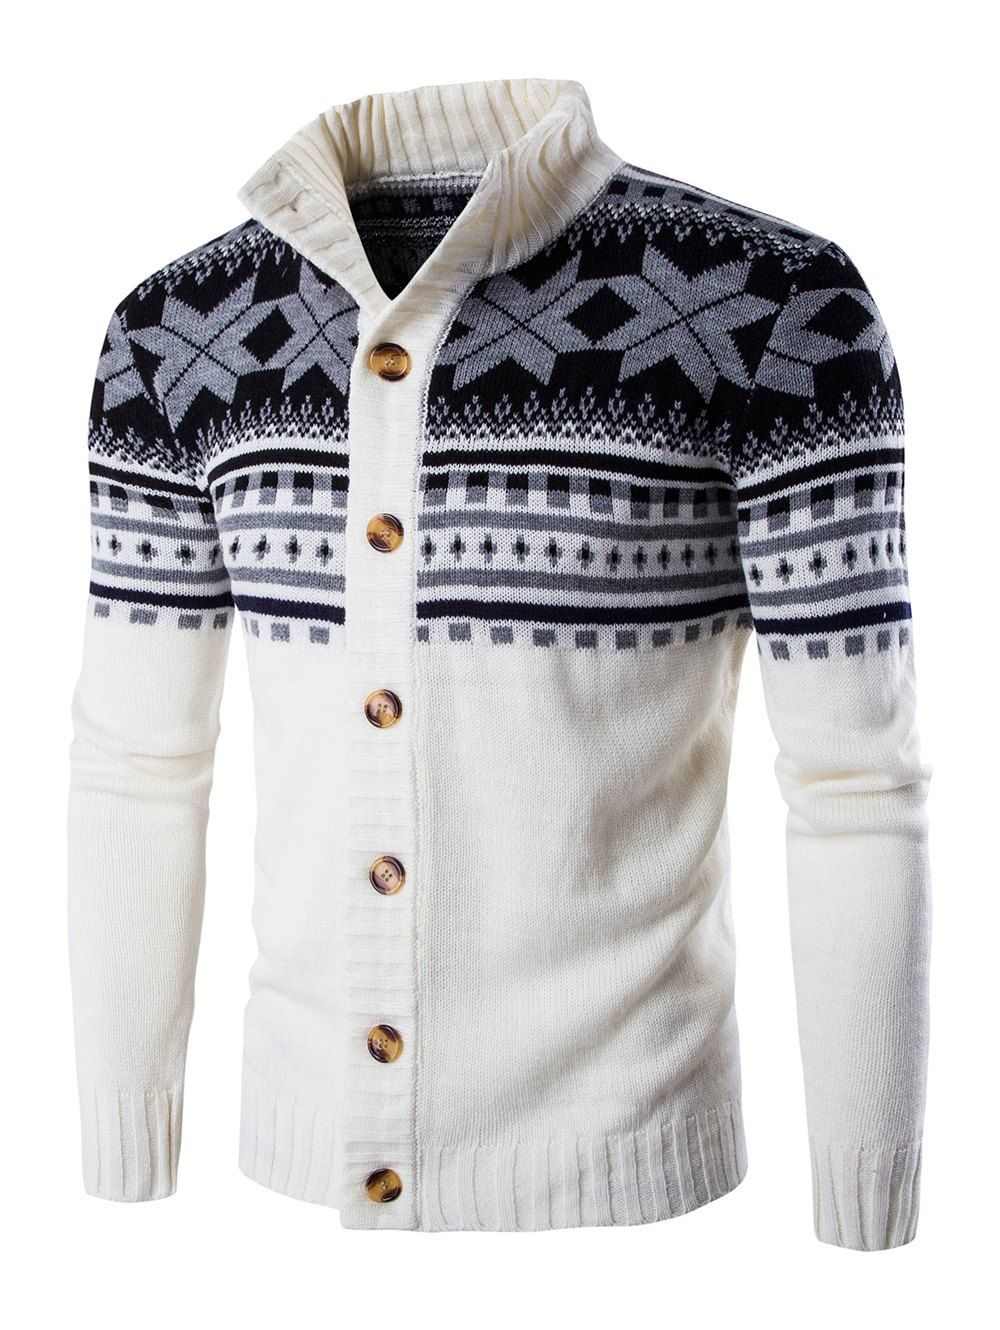 Geometric Design Long Sleeve Sweater Coat | Geometric designs ...